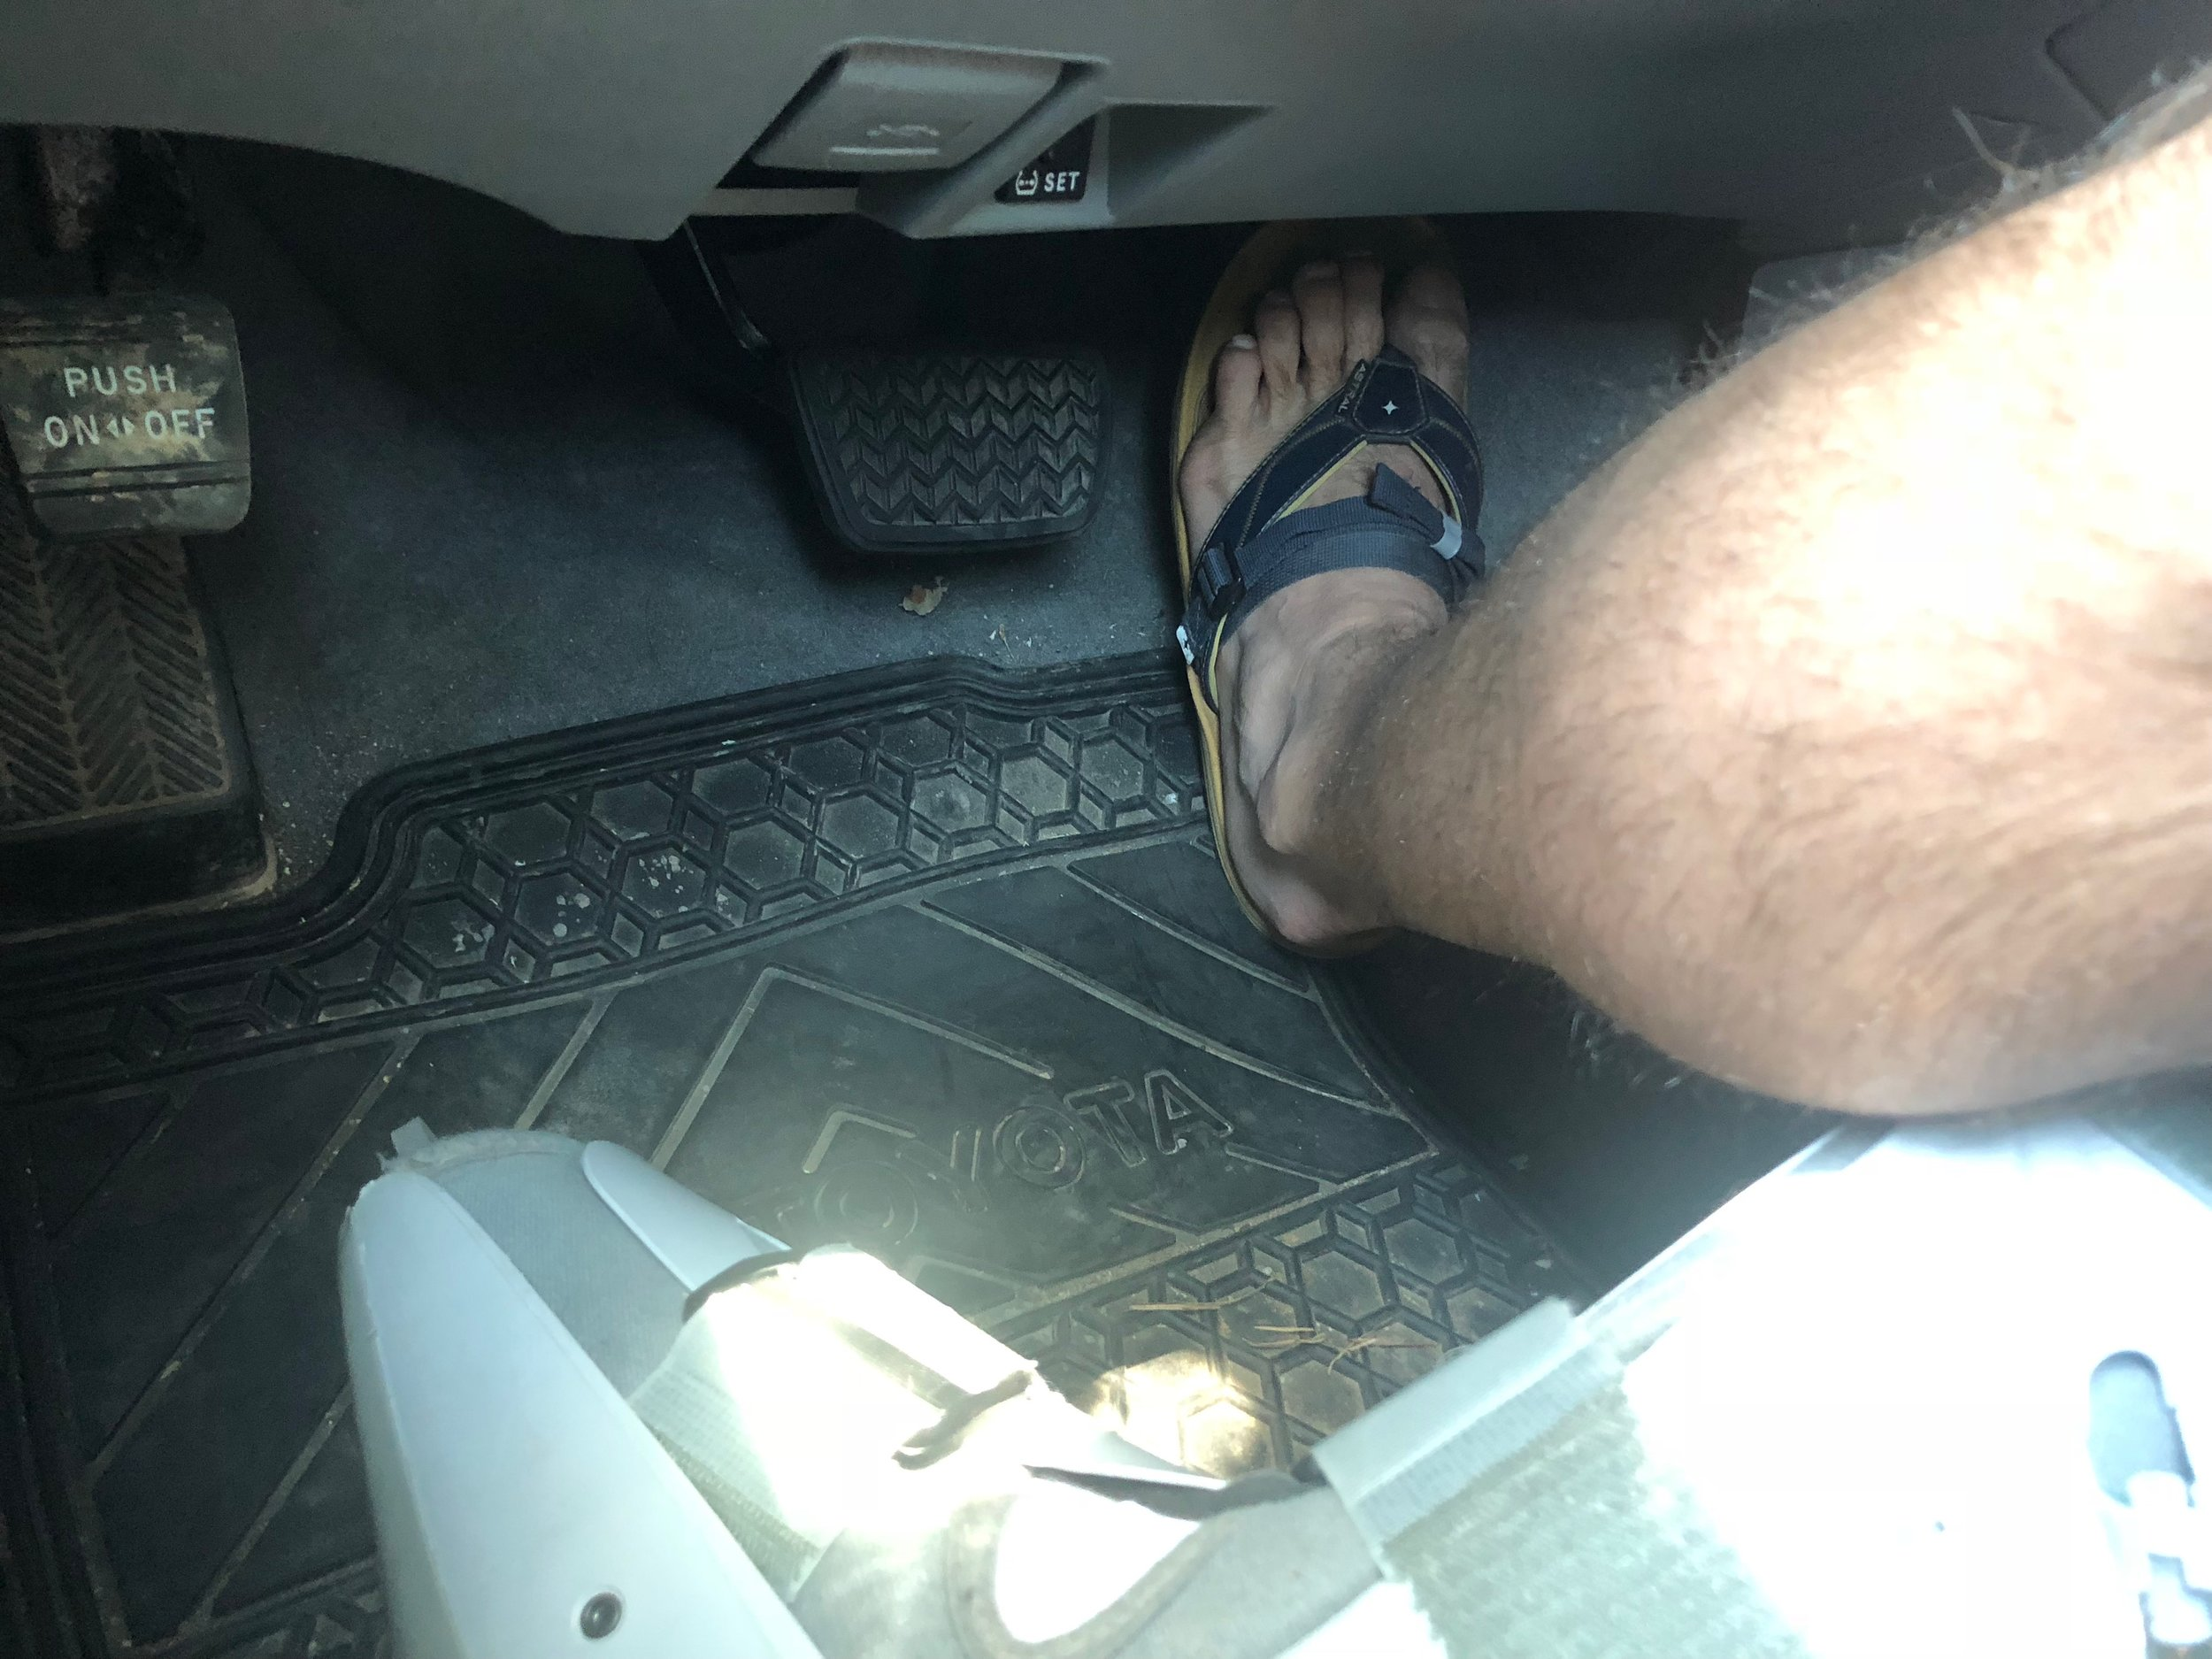 After a few days of practice (important!), driving with my left foot became every bit as effective as driving with my right. A standard transmission, however, would have been a problem.